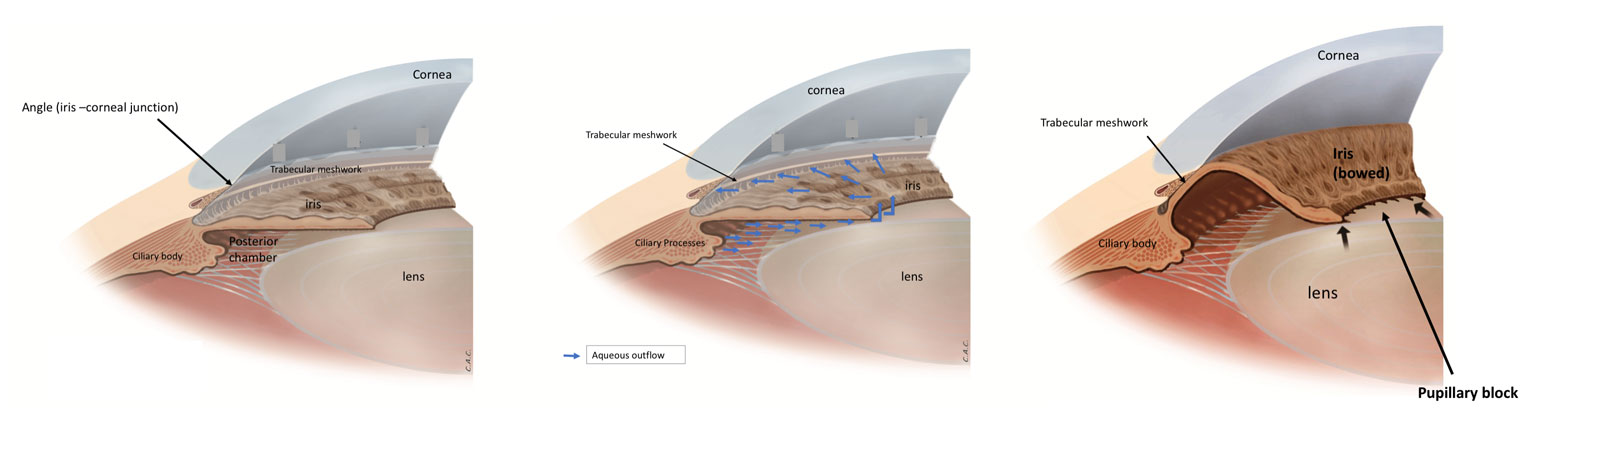 Angle closure glaucoma Fig. 1